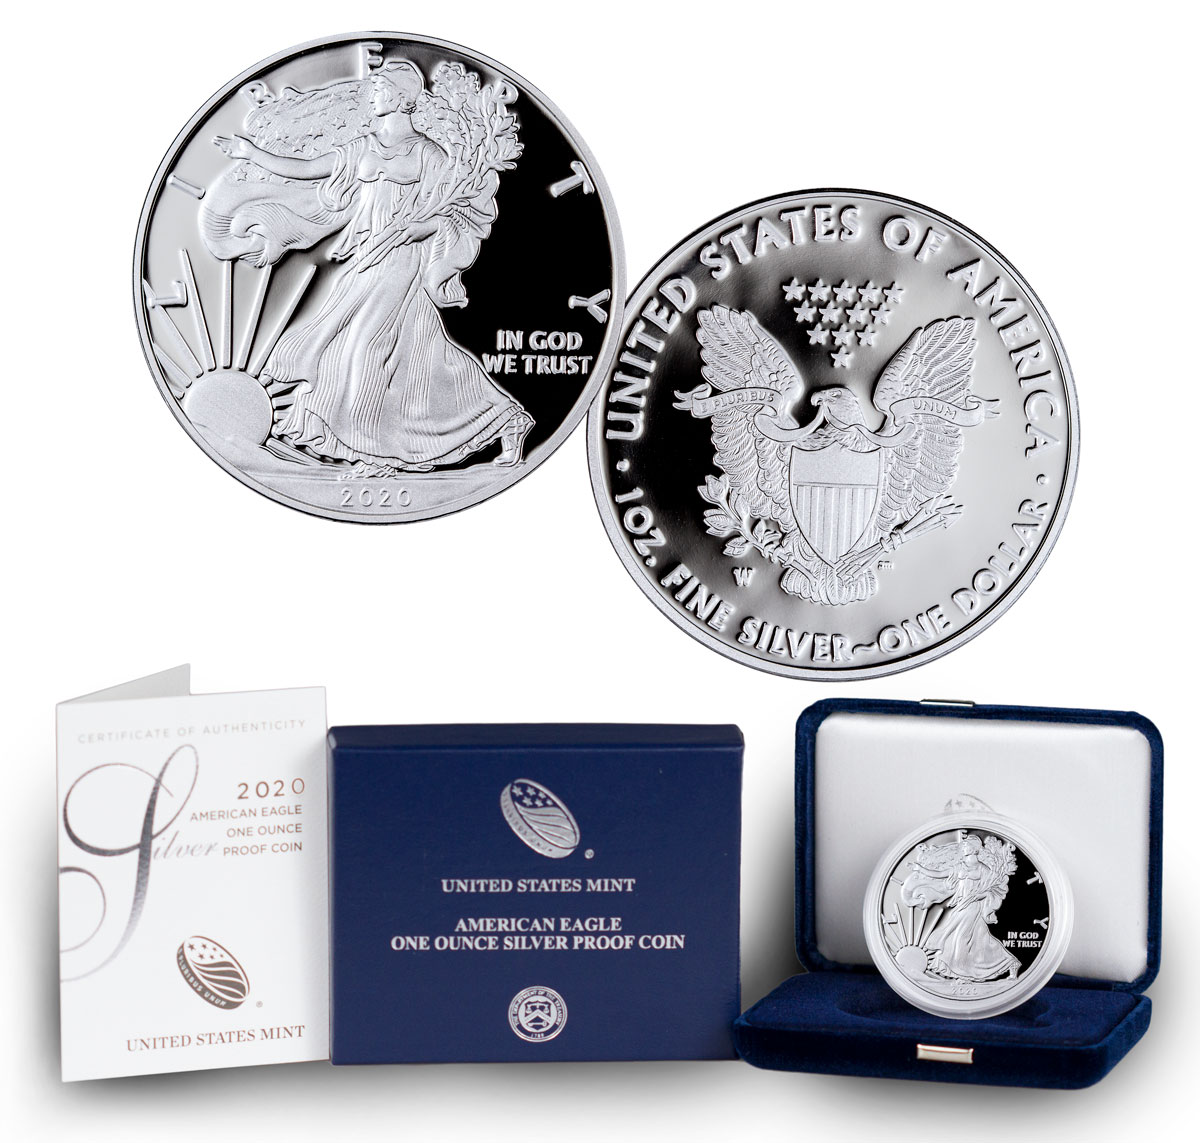 Wedding 2020 1oz Silver Proof Coin: 2020 W 1 Oz Proof Silver American Eagle $1 Coin GEM OGP